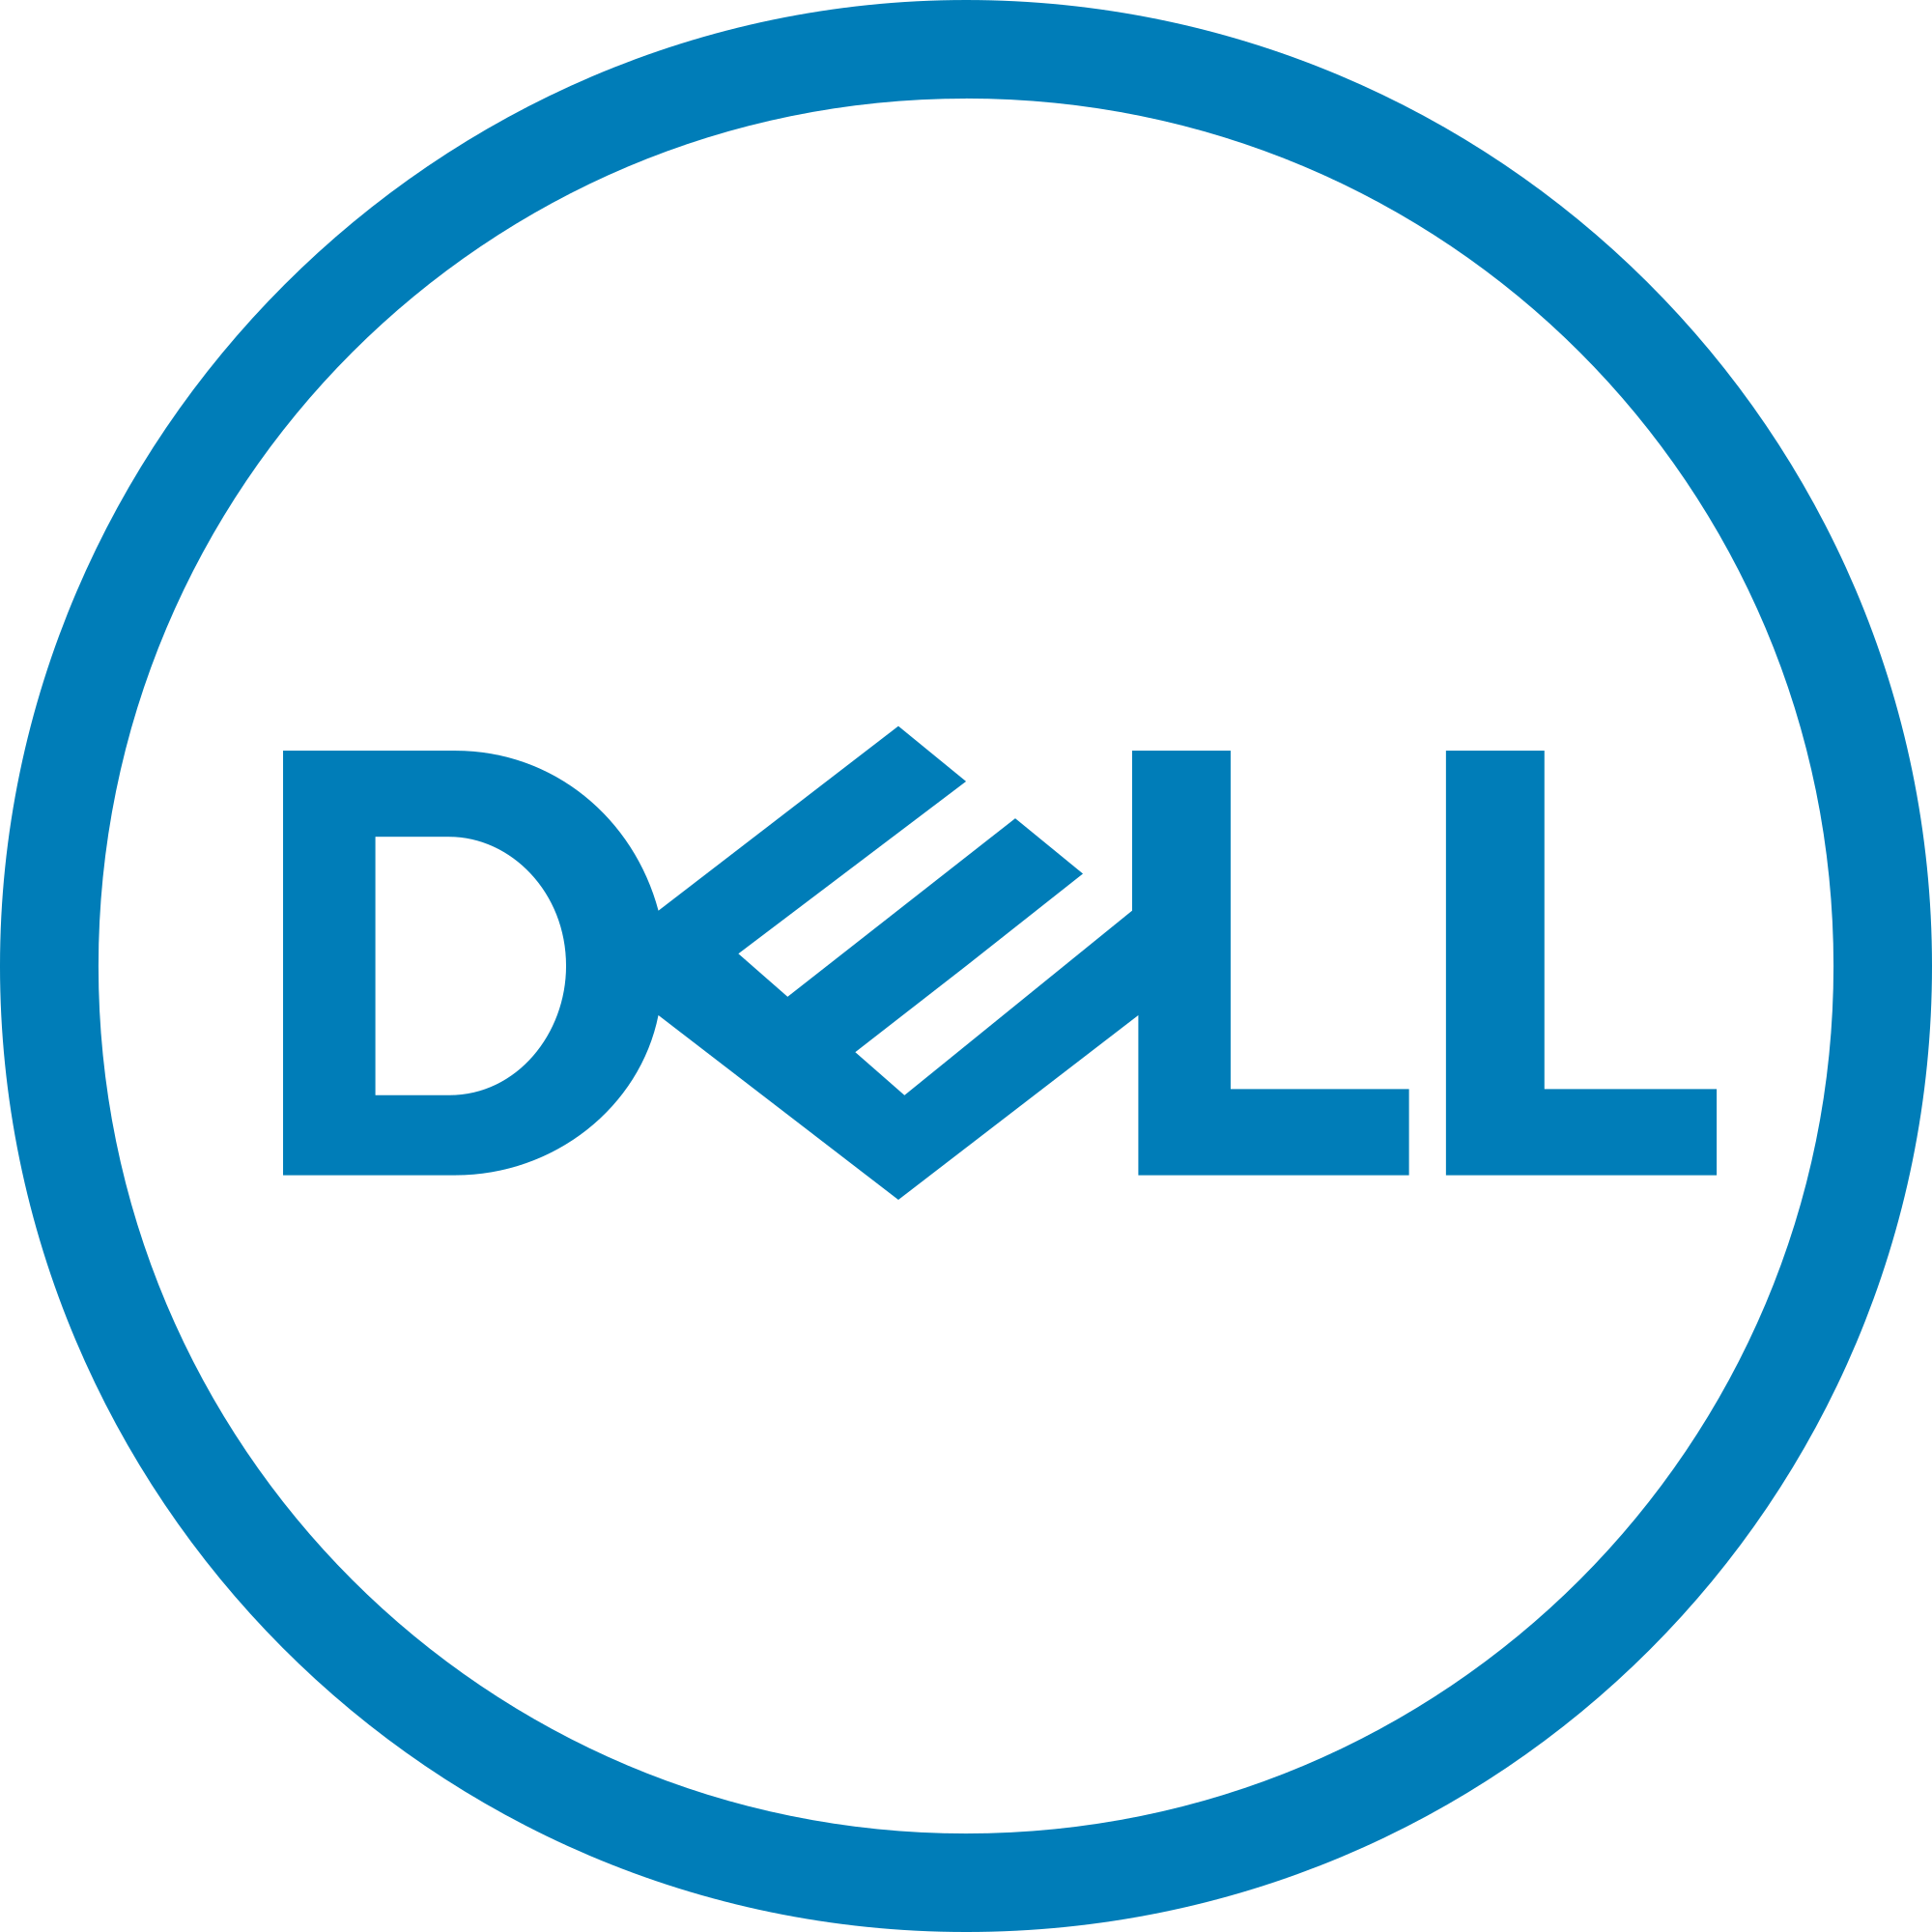 dell-logo-png-open-2000